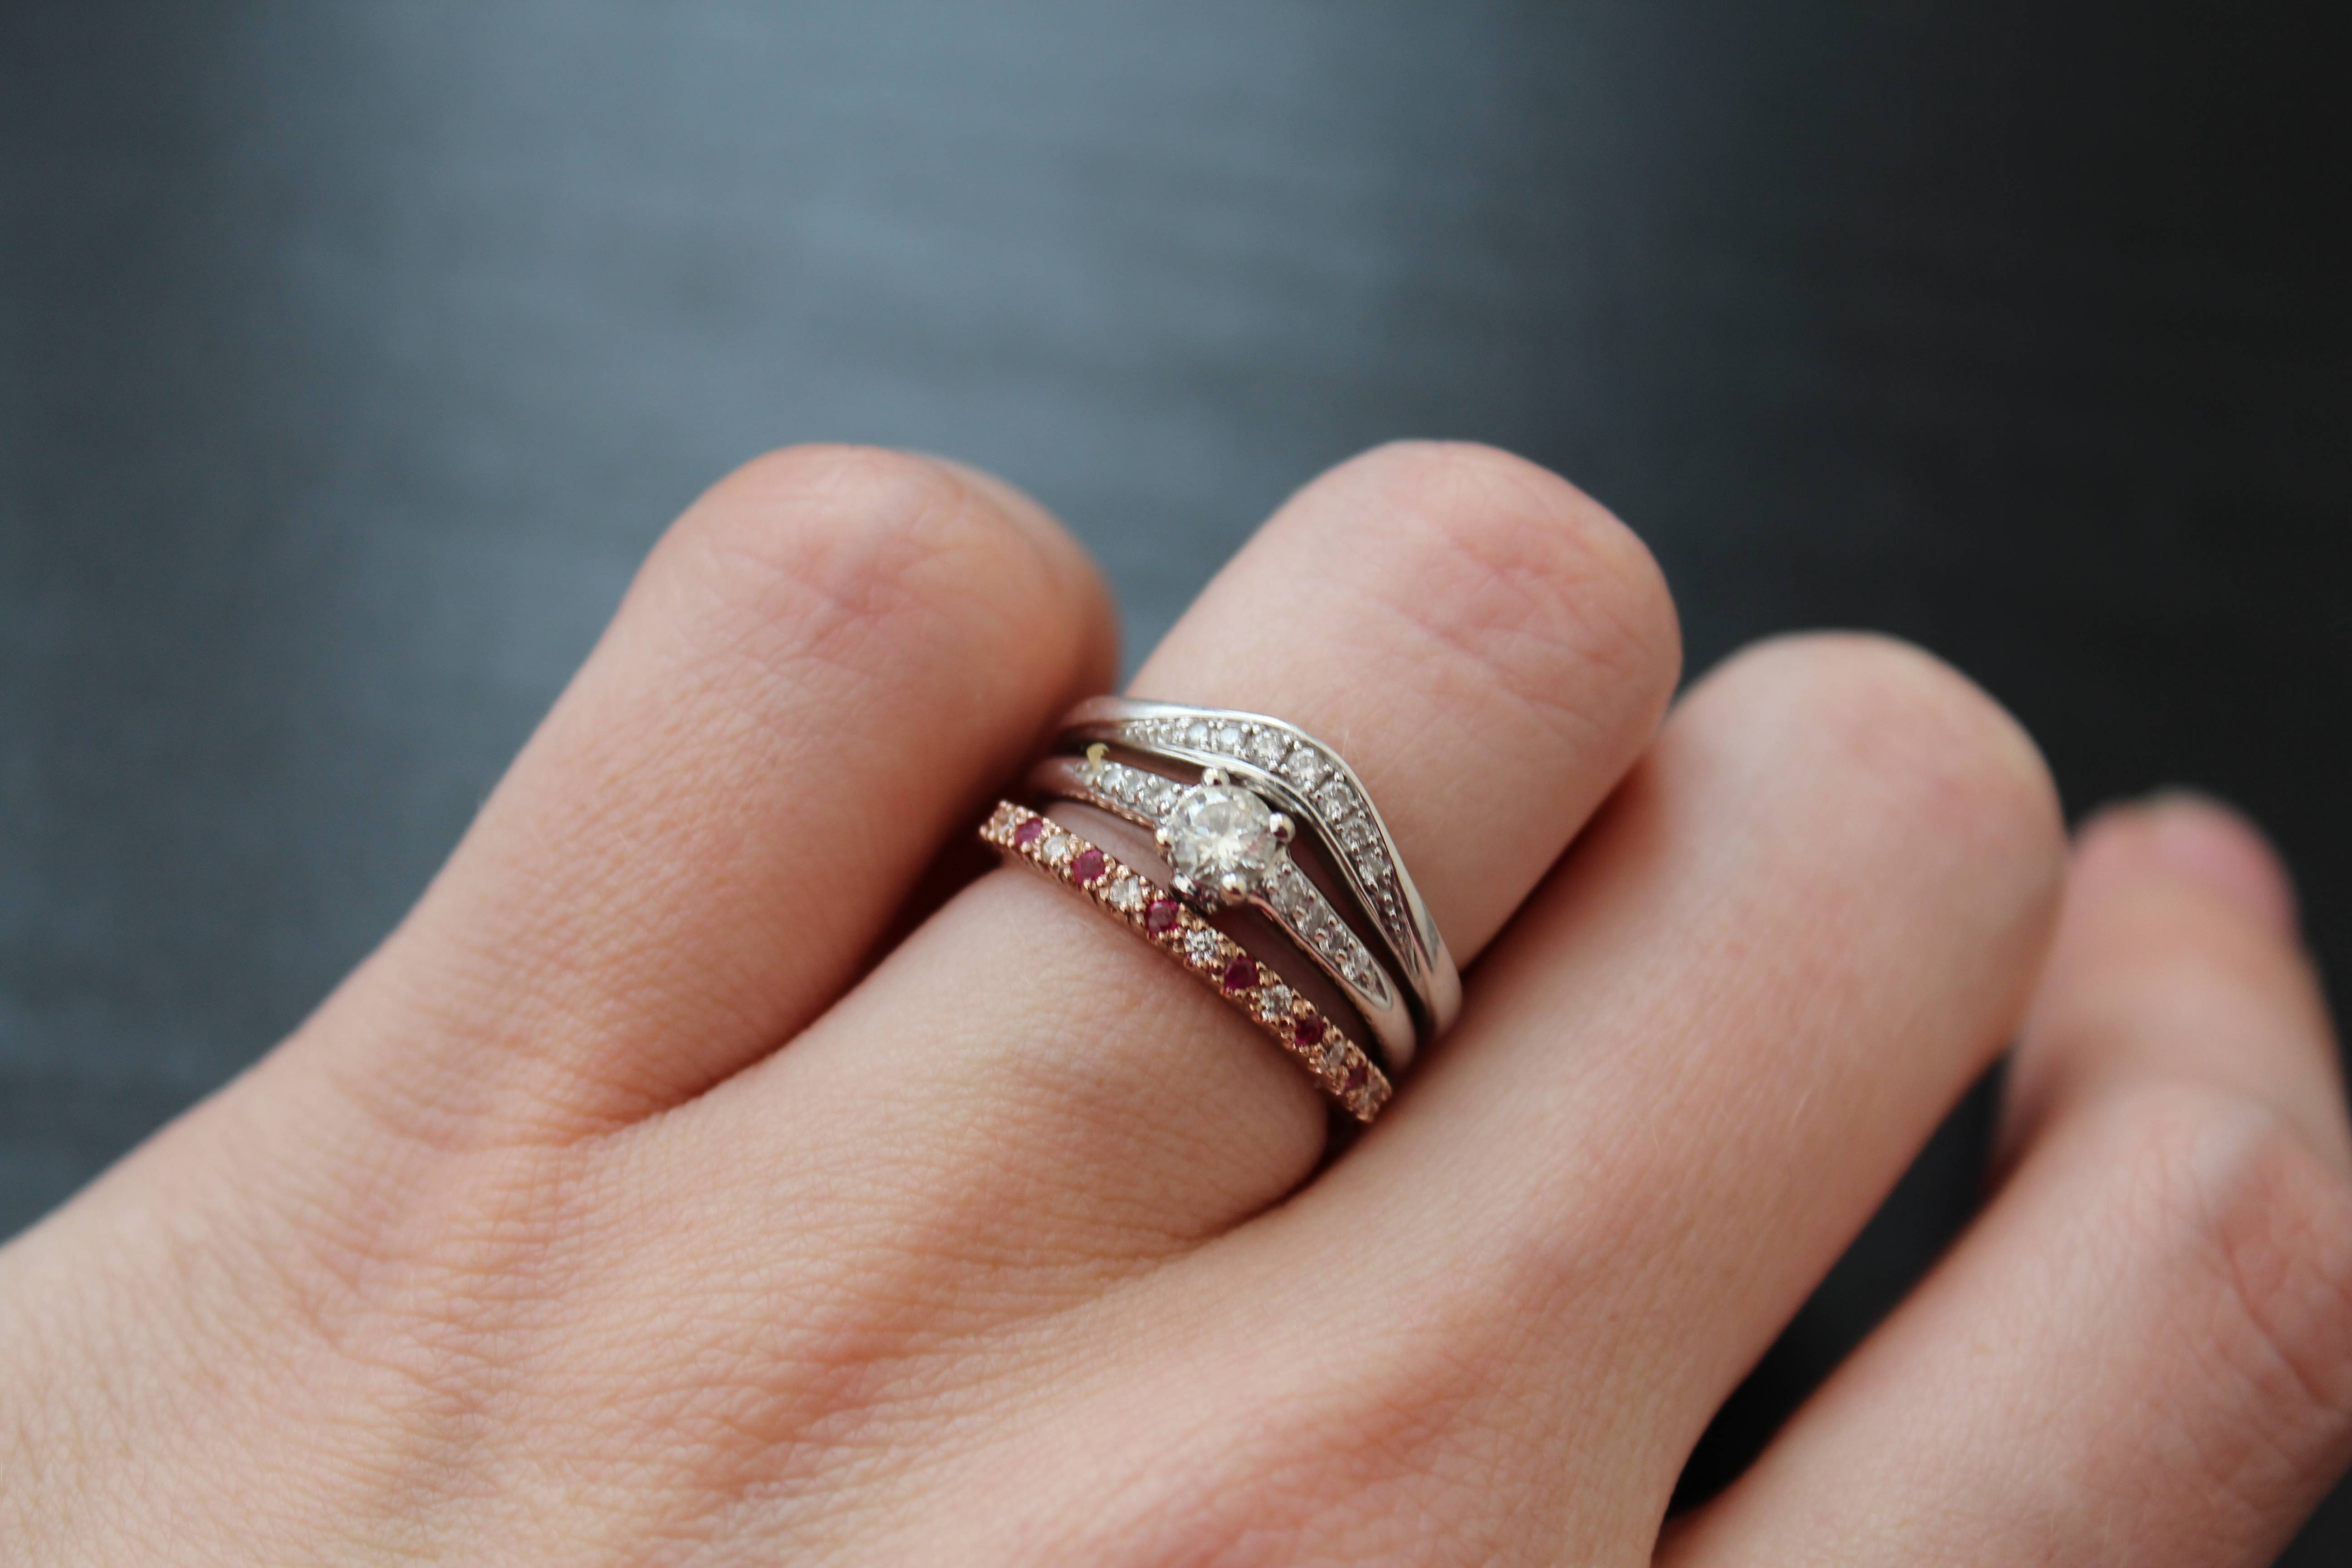 Wedding Rings : Anjolee Reviews Design Your Own Gemstone Ring In Recent Custom Anniversary Rings (View 25 of 25)